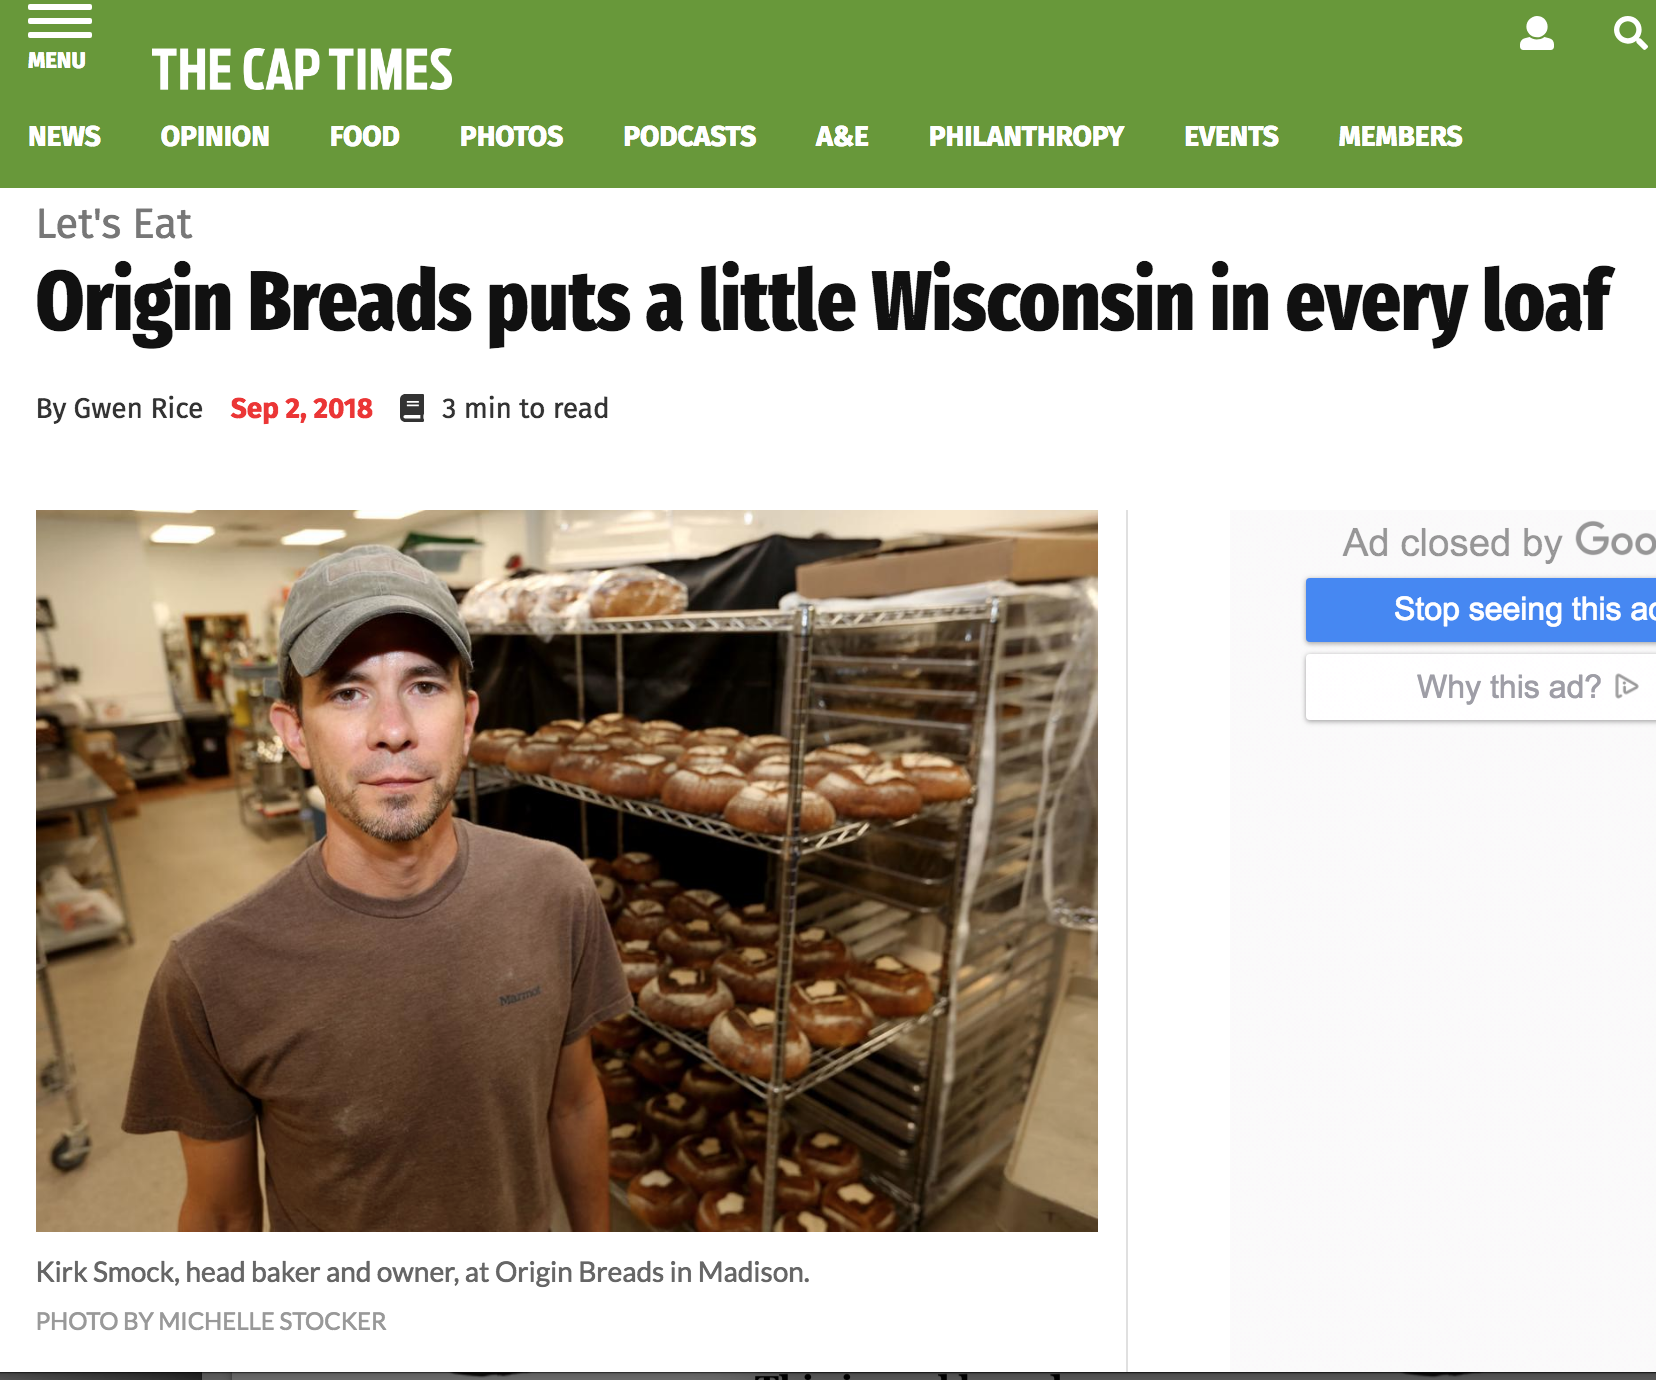 Origin Breads Puts a Little Wisconsin in Every Loaf_The Cap Times